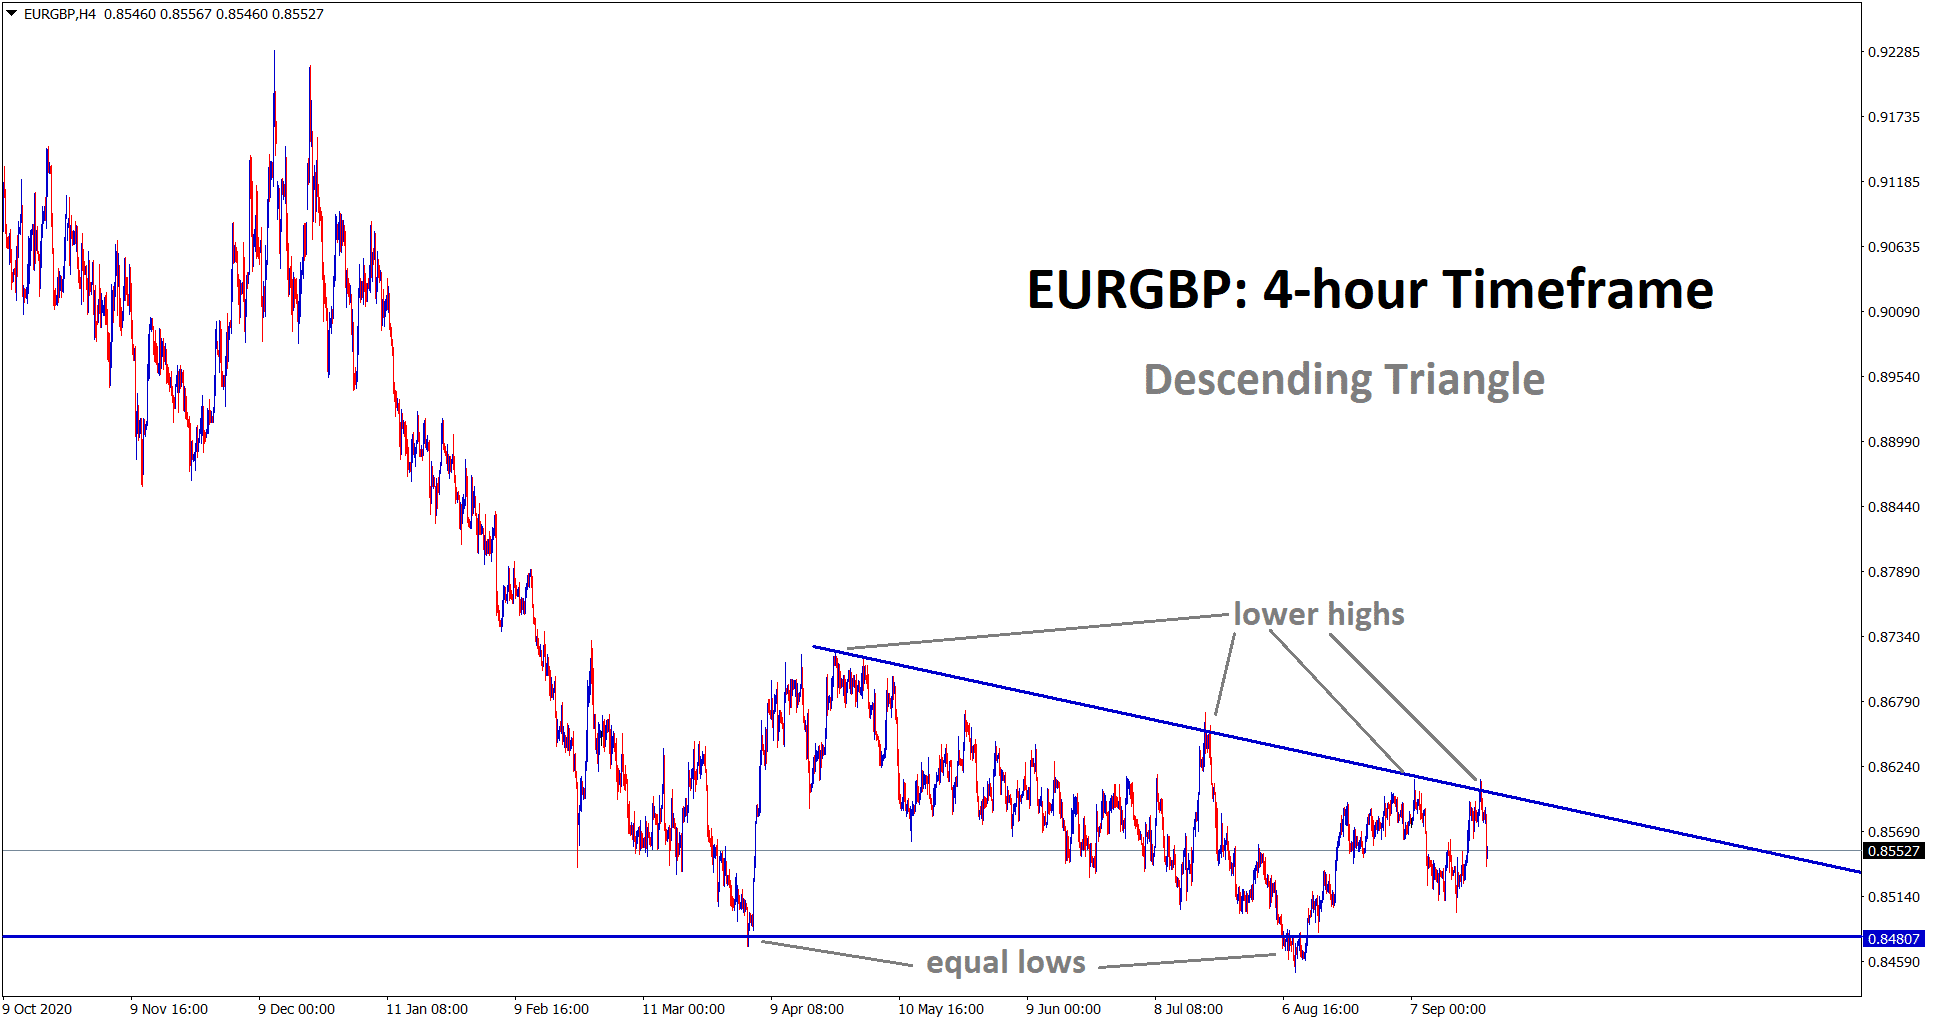 EURGBP falling from the lower high area of the descending triangle